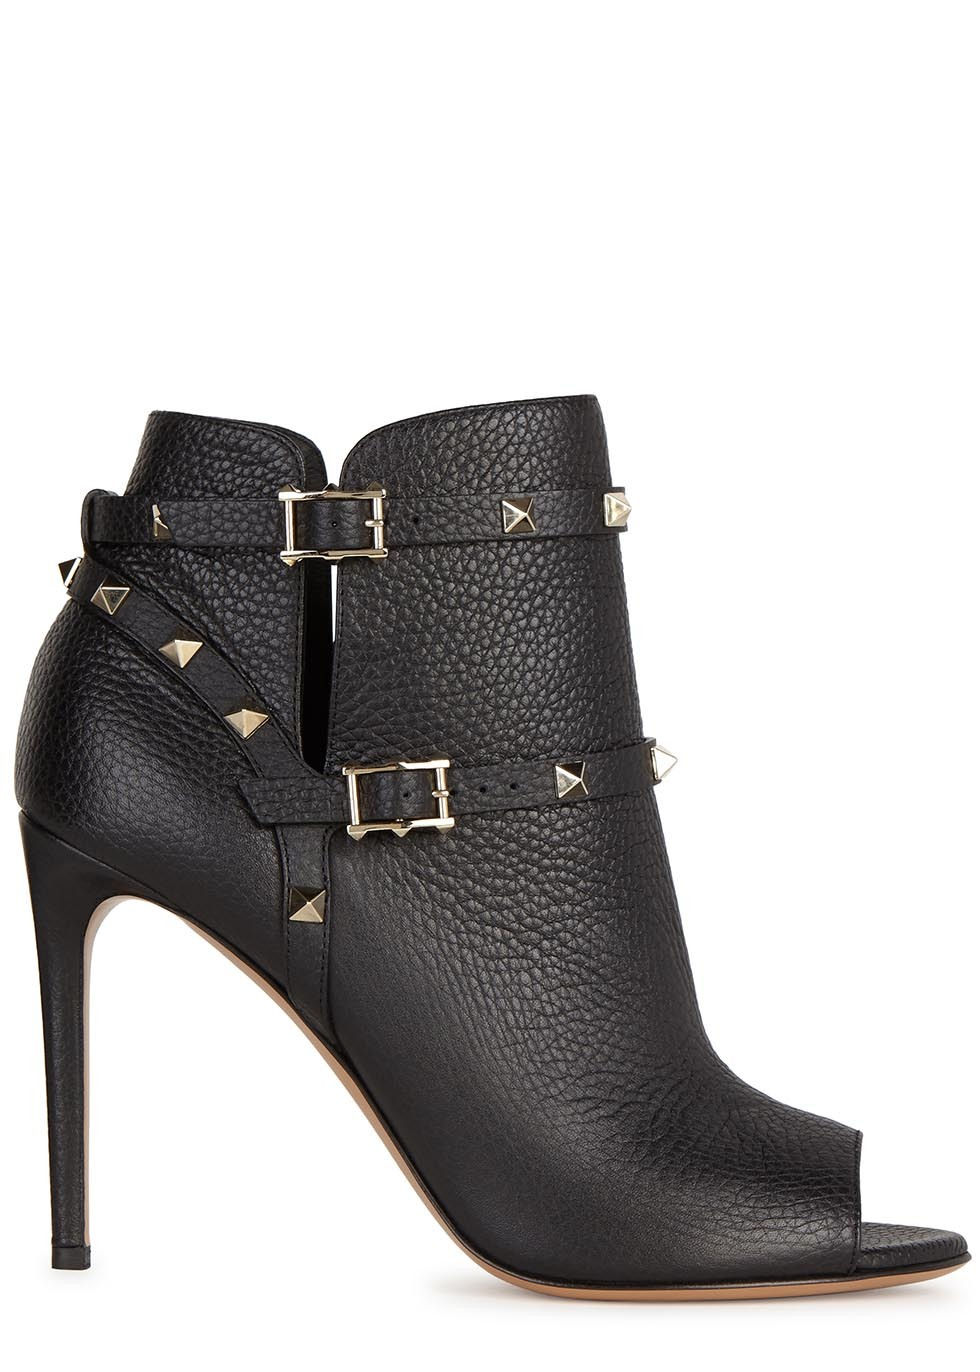 Rockstud 100 Black Leather Ankle Boots - predominant colour: black; material: leather; embellishment: studs; heel: stiletto; toe: open toe/peeptoe; boot length: ankle boot; style: standard; finish: plain; pattern: plain; heel height: very high; occasions: creative work; season: a/w 2015; wardrobe: highlight